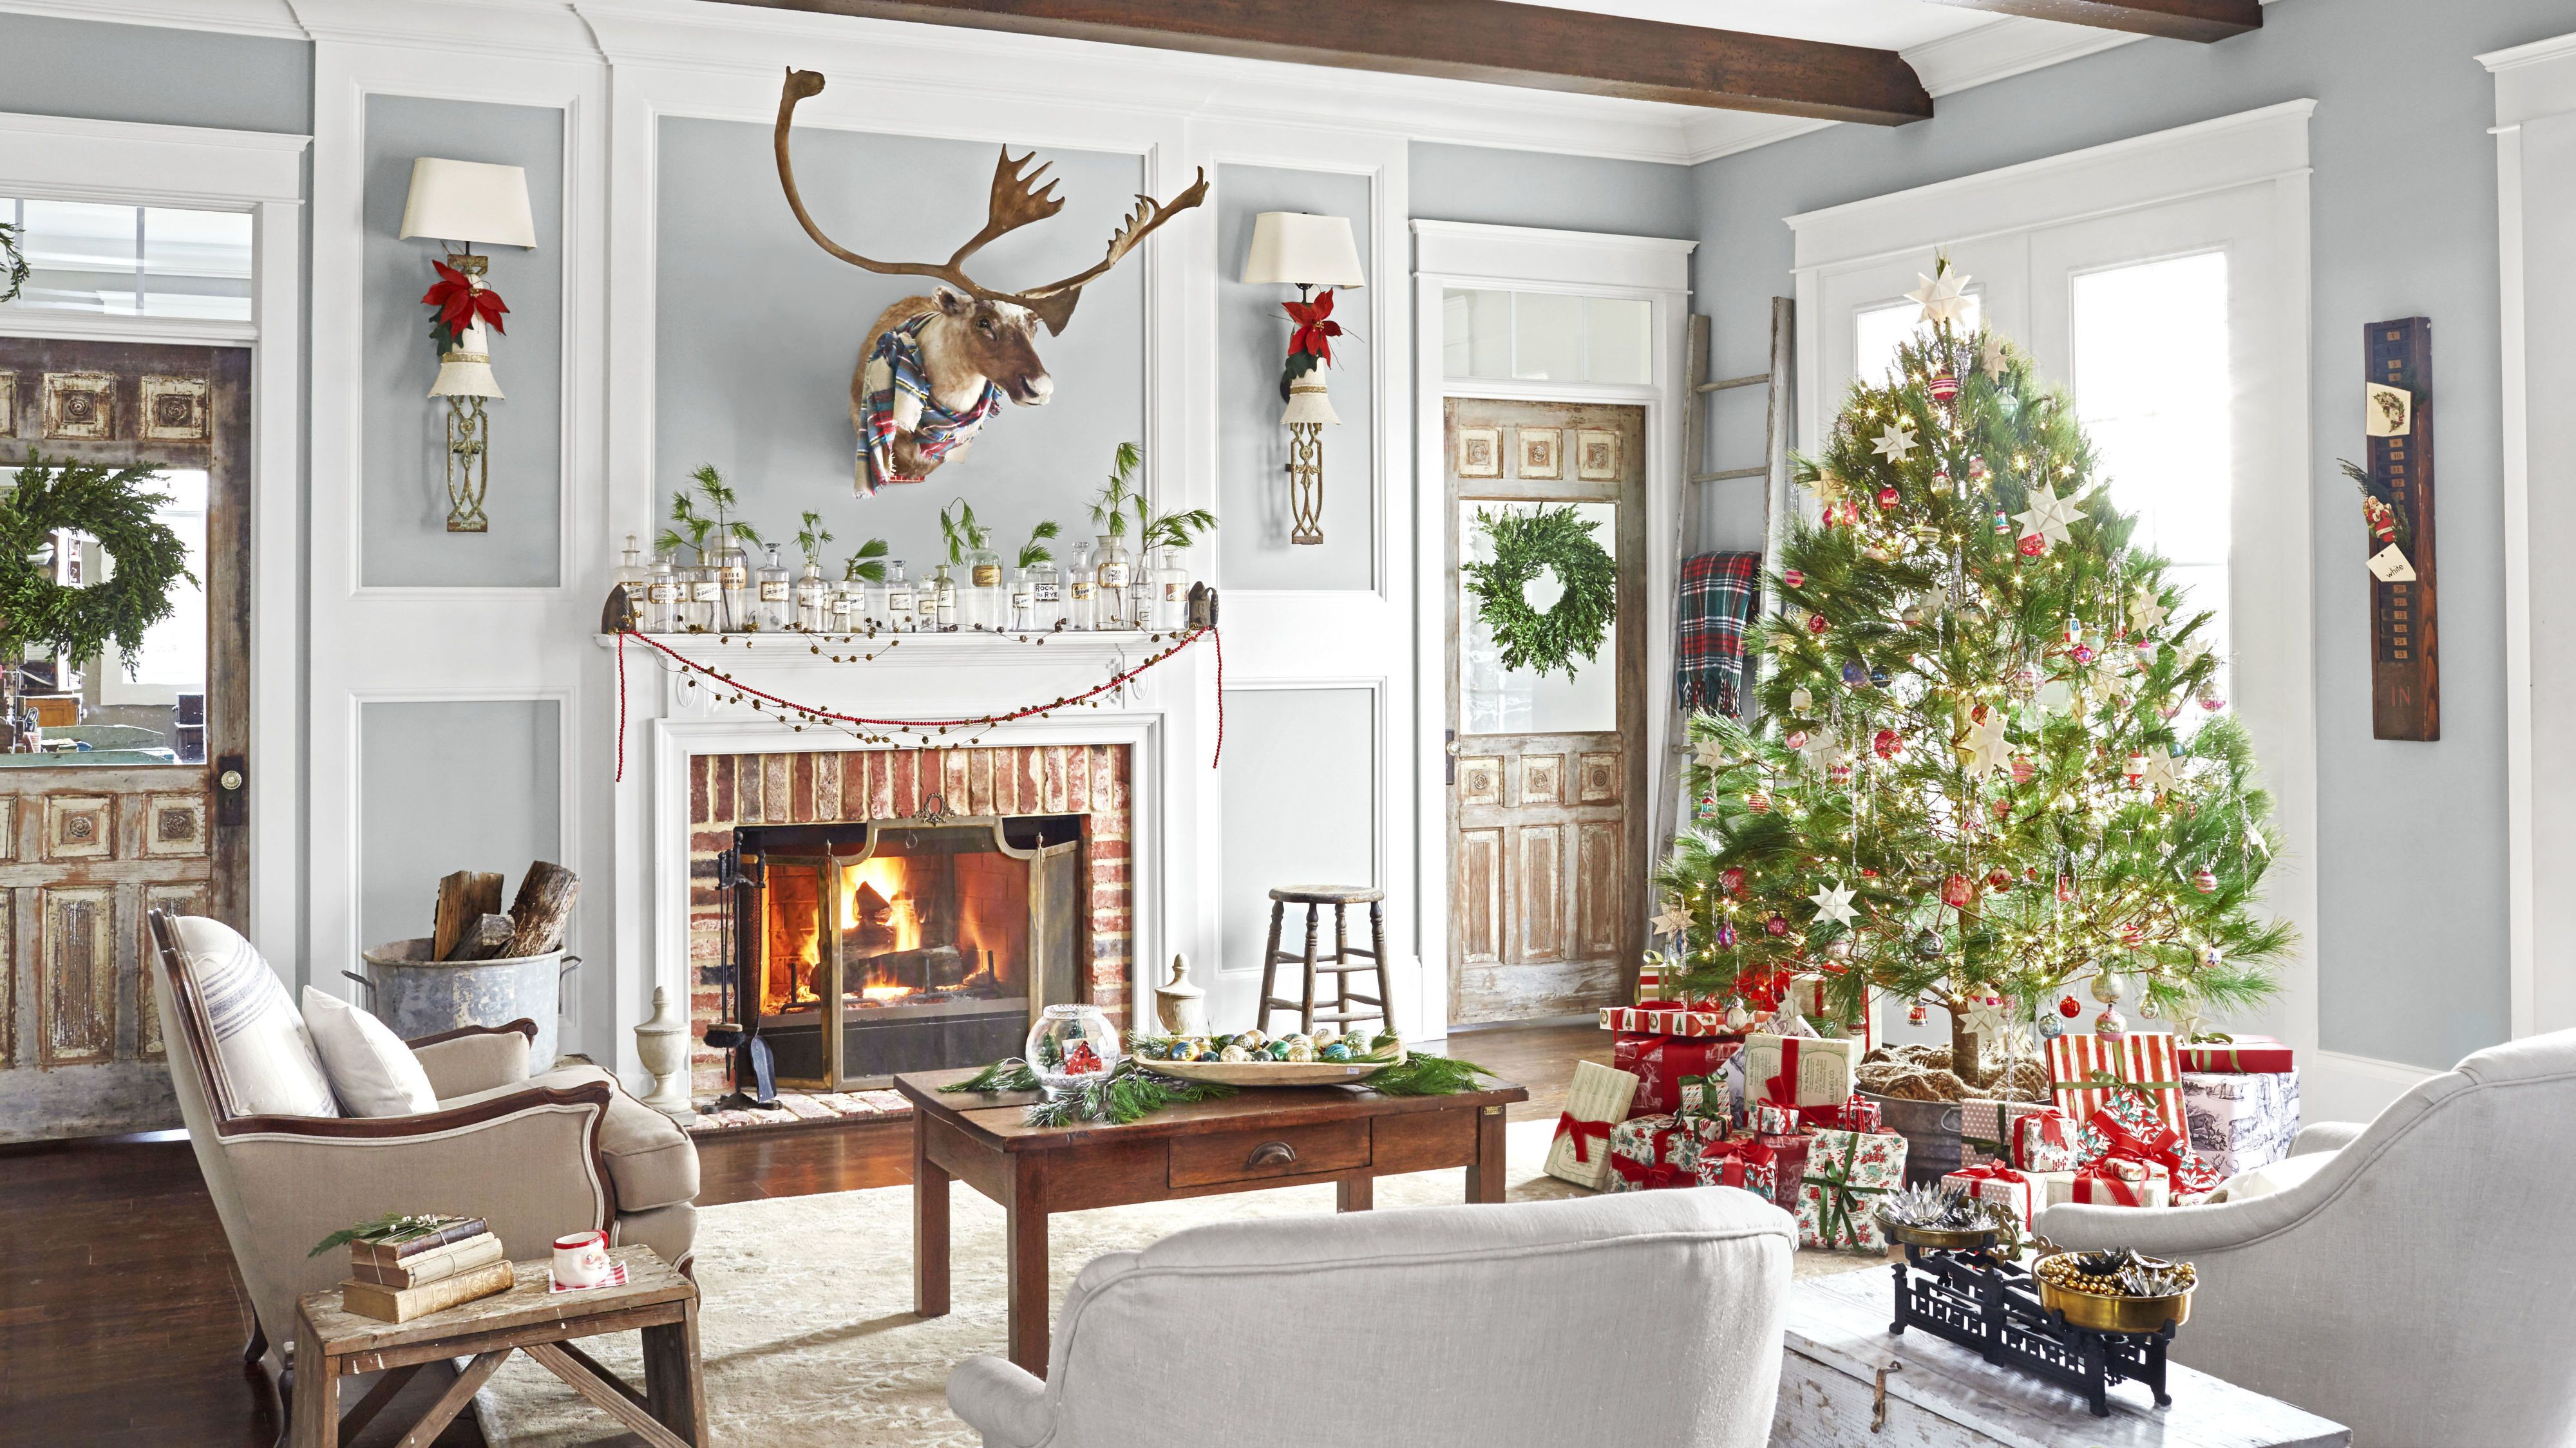 Awesome Tennessee Home Decked Out With Vintage Christmas Decor